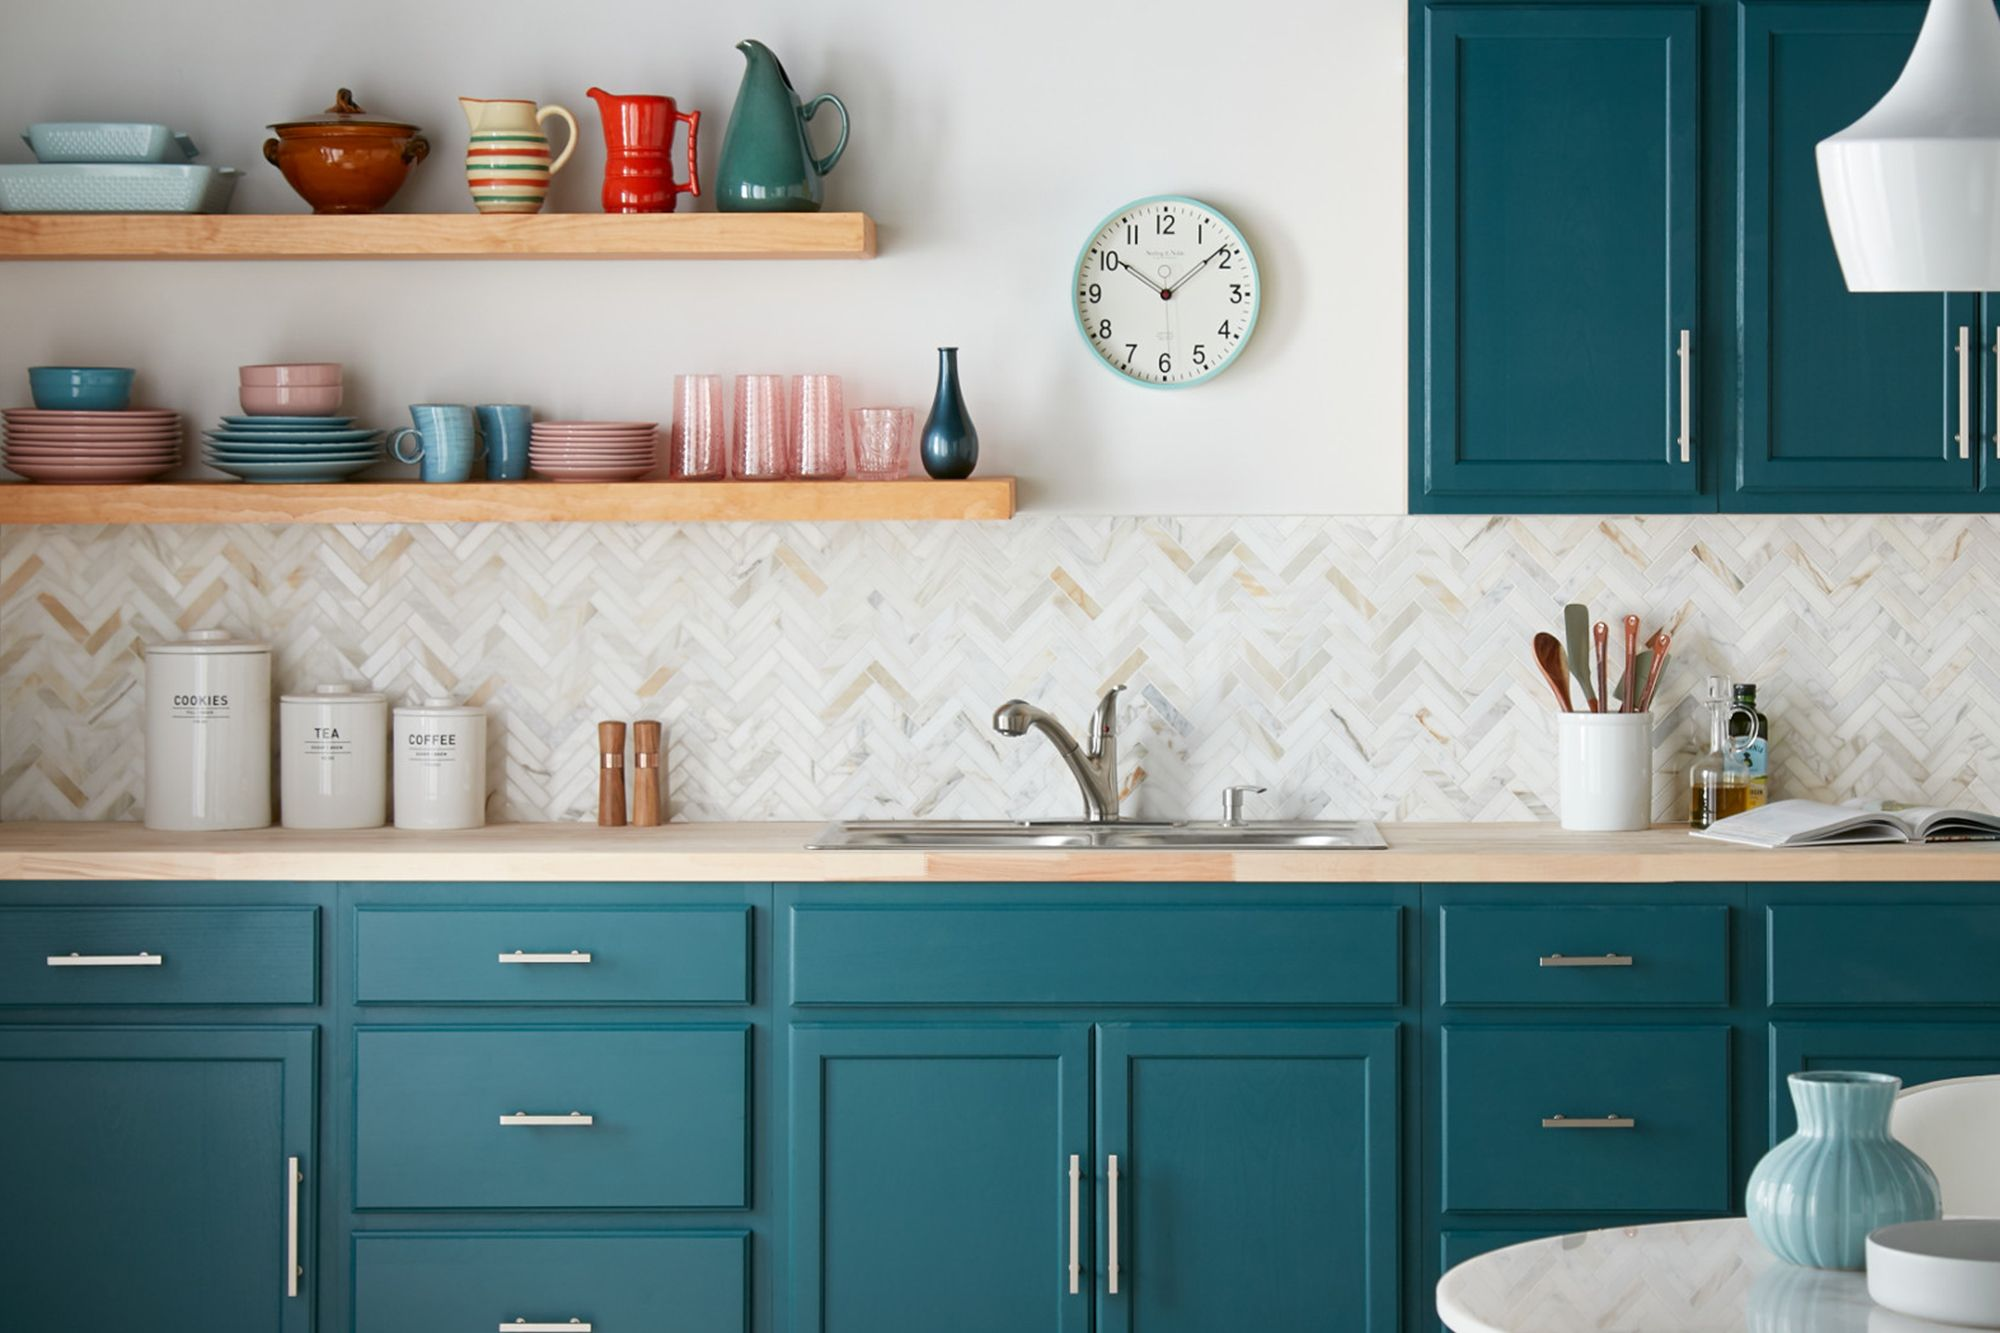 Colorful Kitchen Cabinet Transformation The Perfect Finish Blog By Kilz In 2020 Teal Kitchen Cabinets Rustic Kitchen Cabinets Kitchen Cabinet Colors